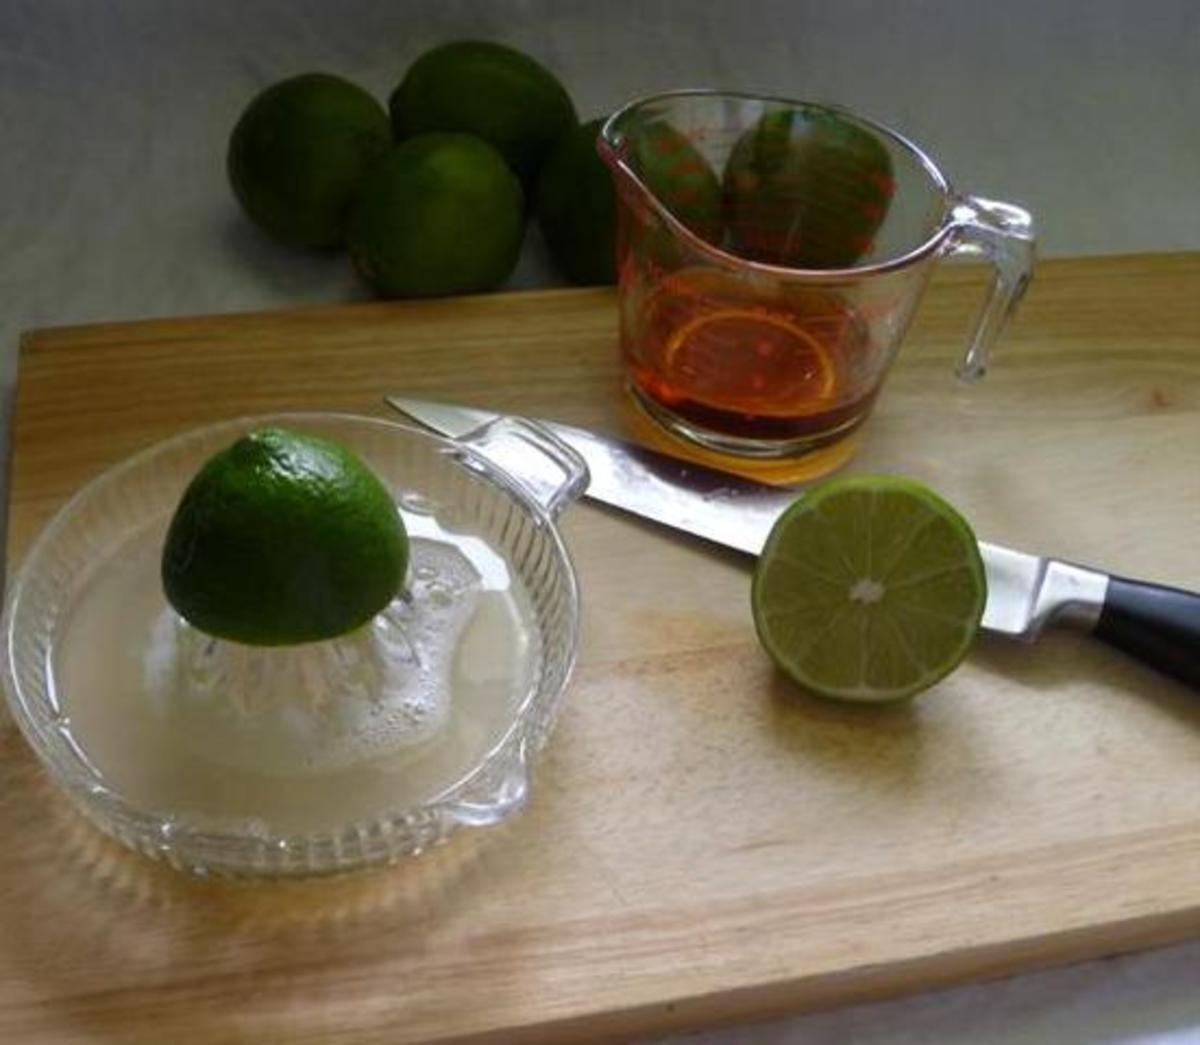 juicing the limes